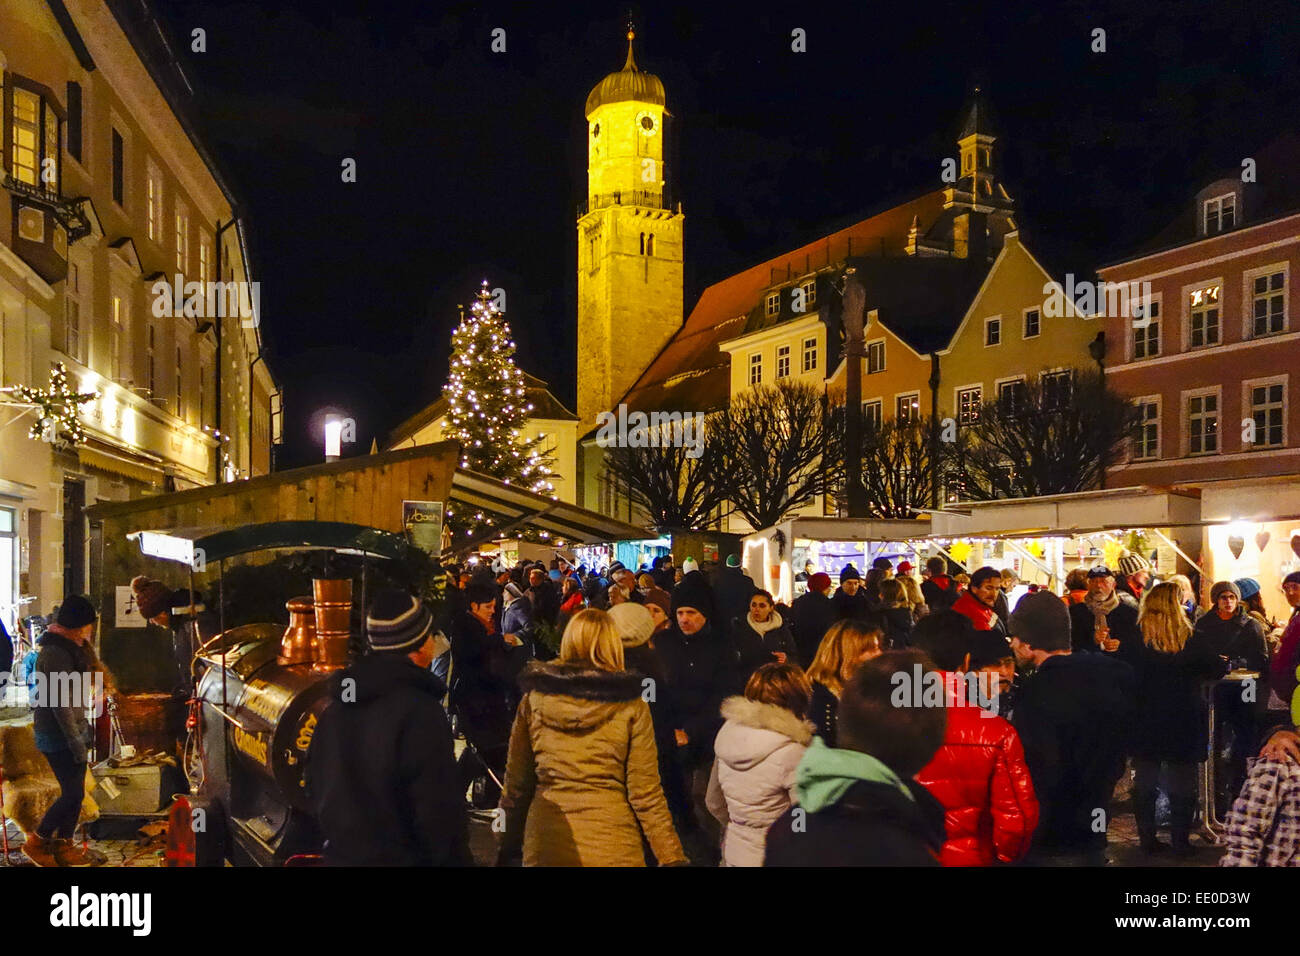 weihnachtsmarkt in weilheim oberbayern deutschland. Black Bedroom Furniture Sets. Home Design Ideas